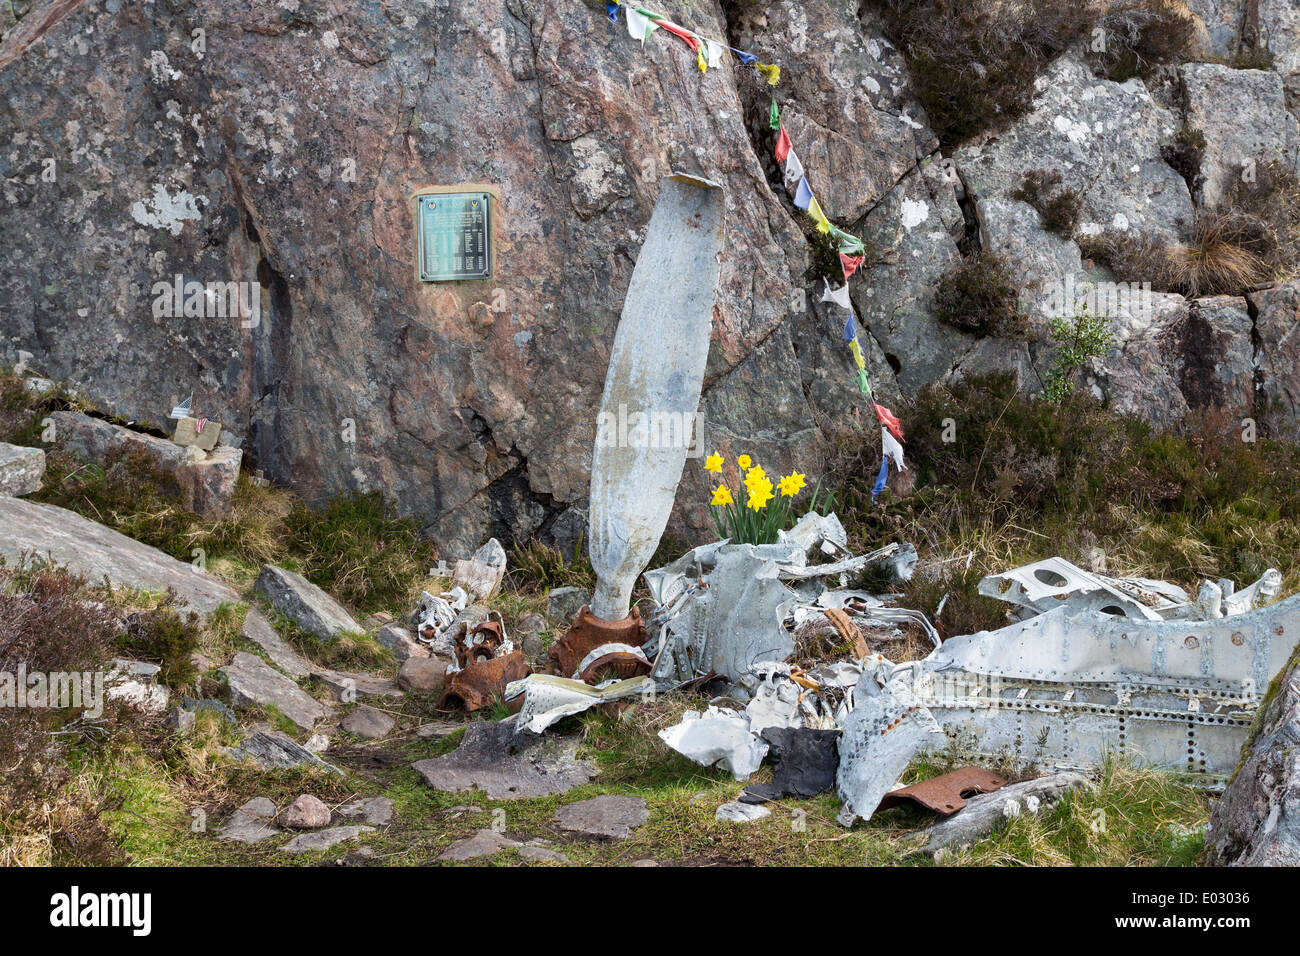 Memorial to the Crew of a B-24H Liberator Bomber which crashed on 13th June 1945 Fairy Lochs, Sheildaig, Scotland - Stock Image